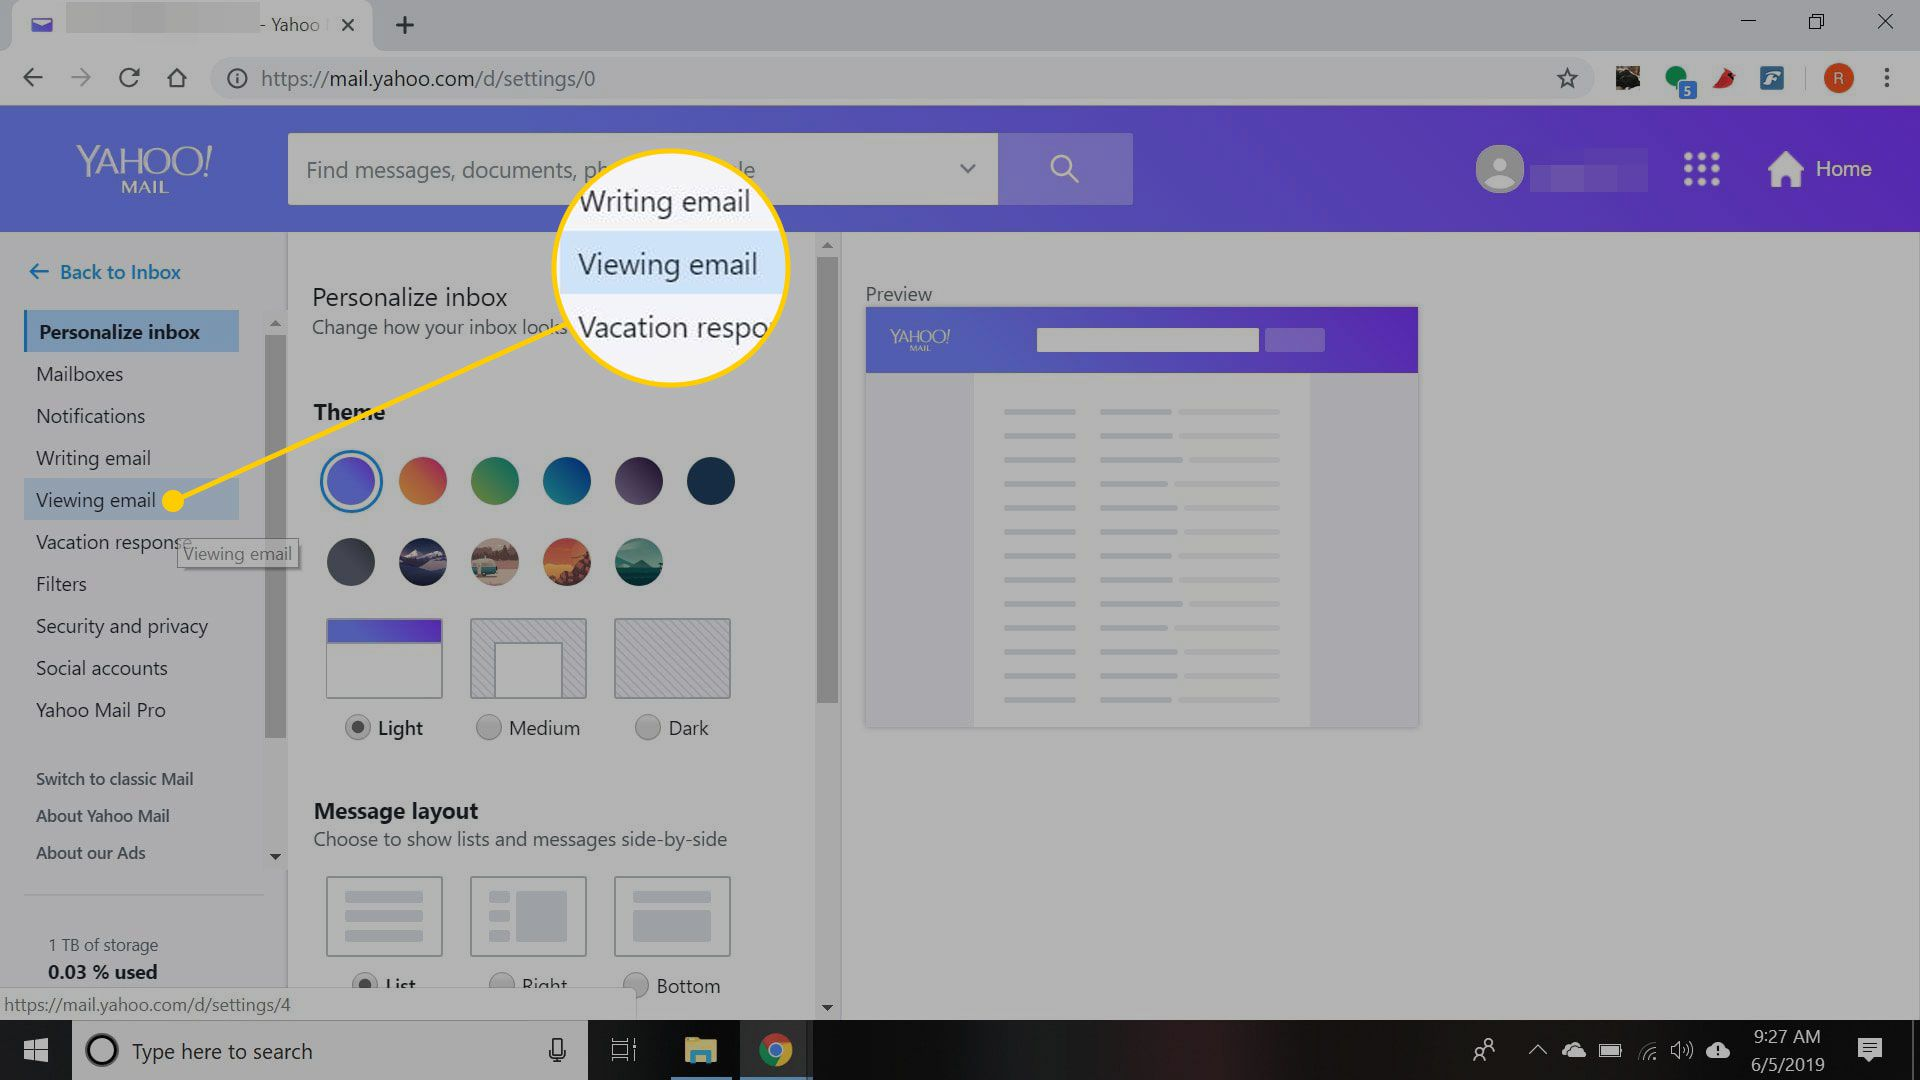 Yahoo Mail settings with the Viewing Email heading highlighted